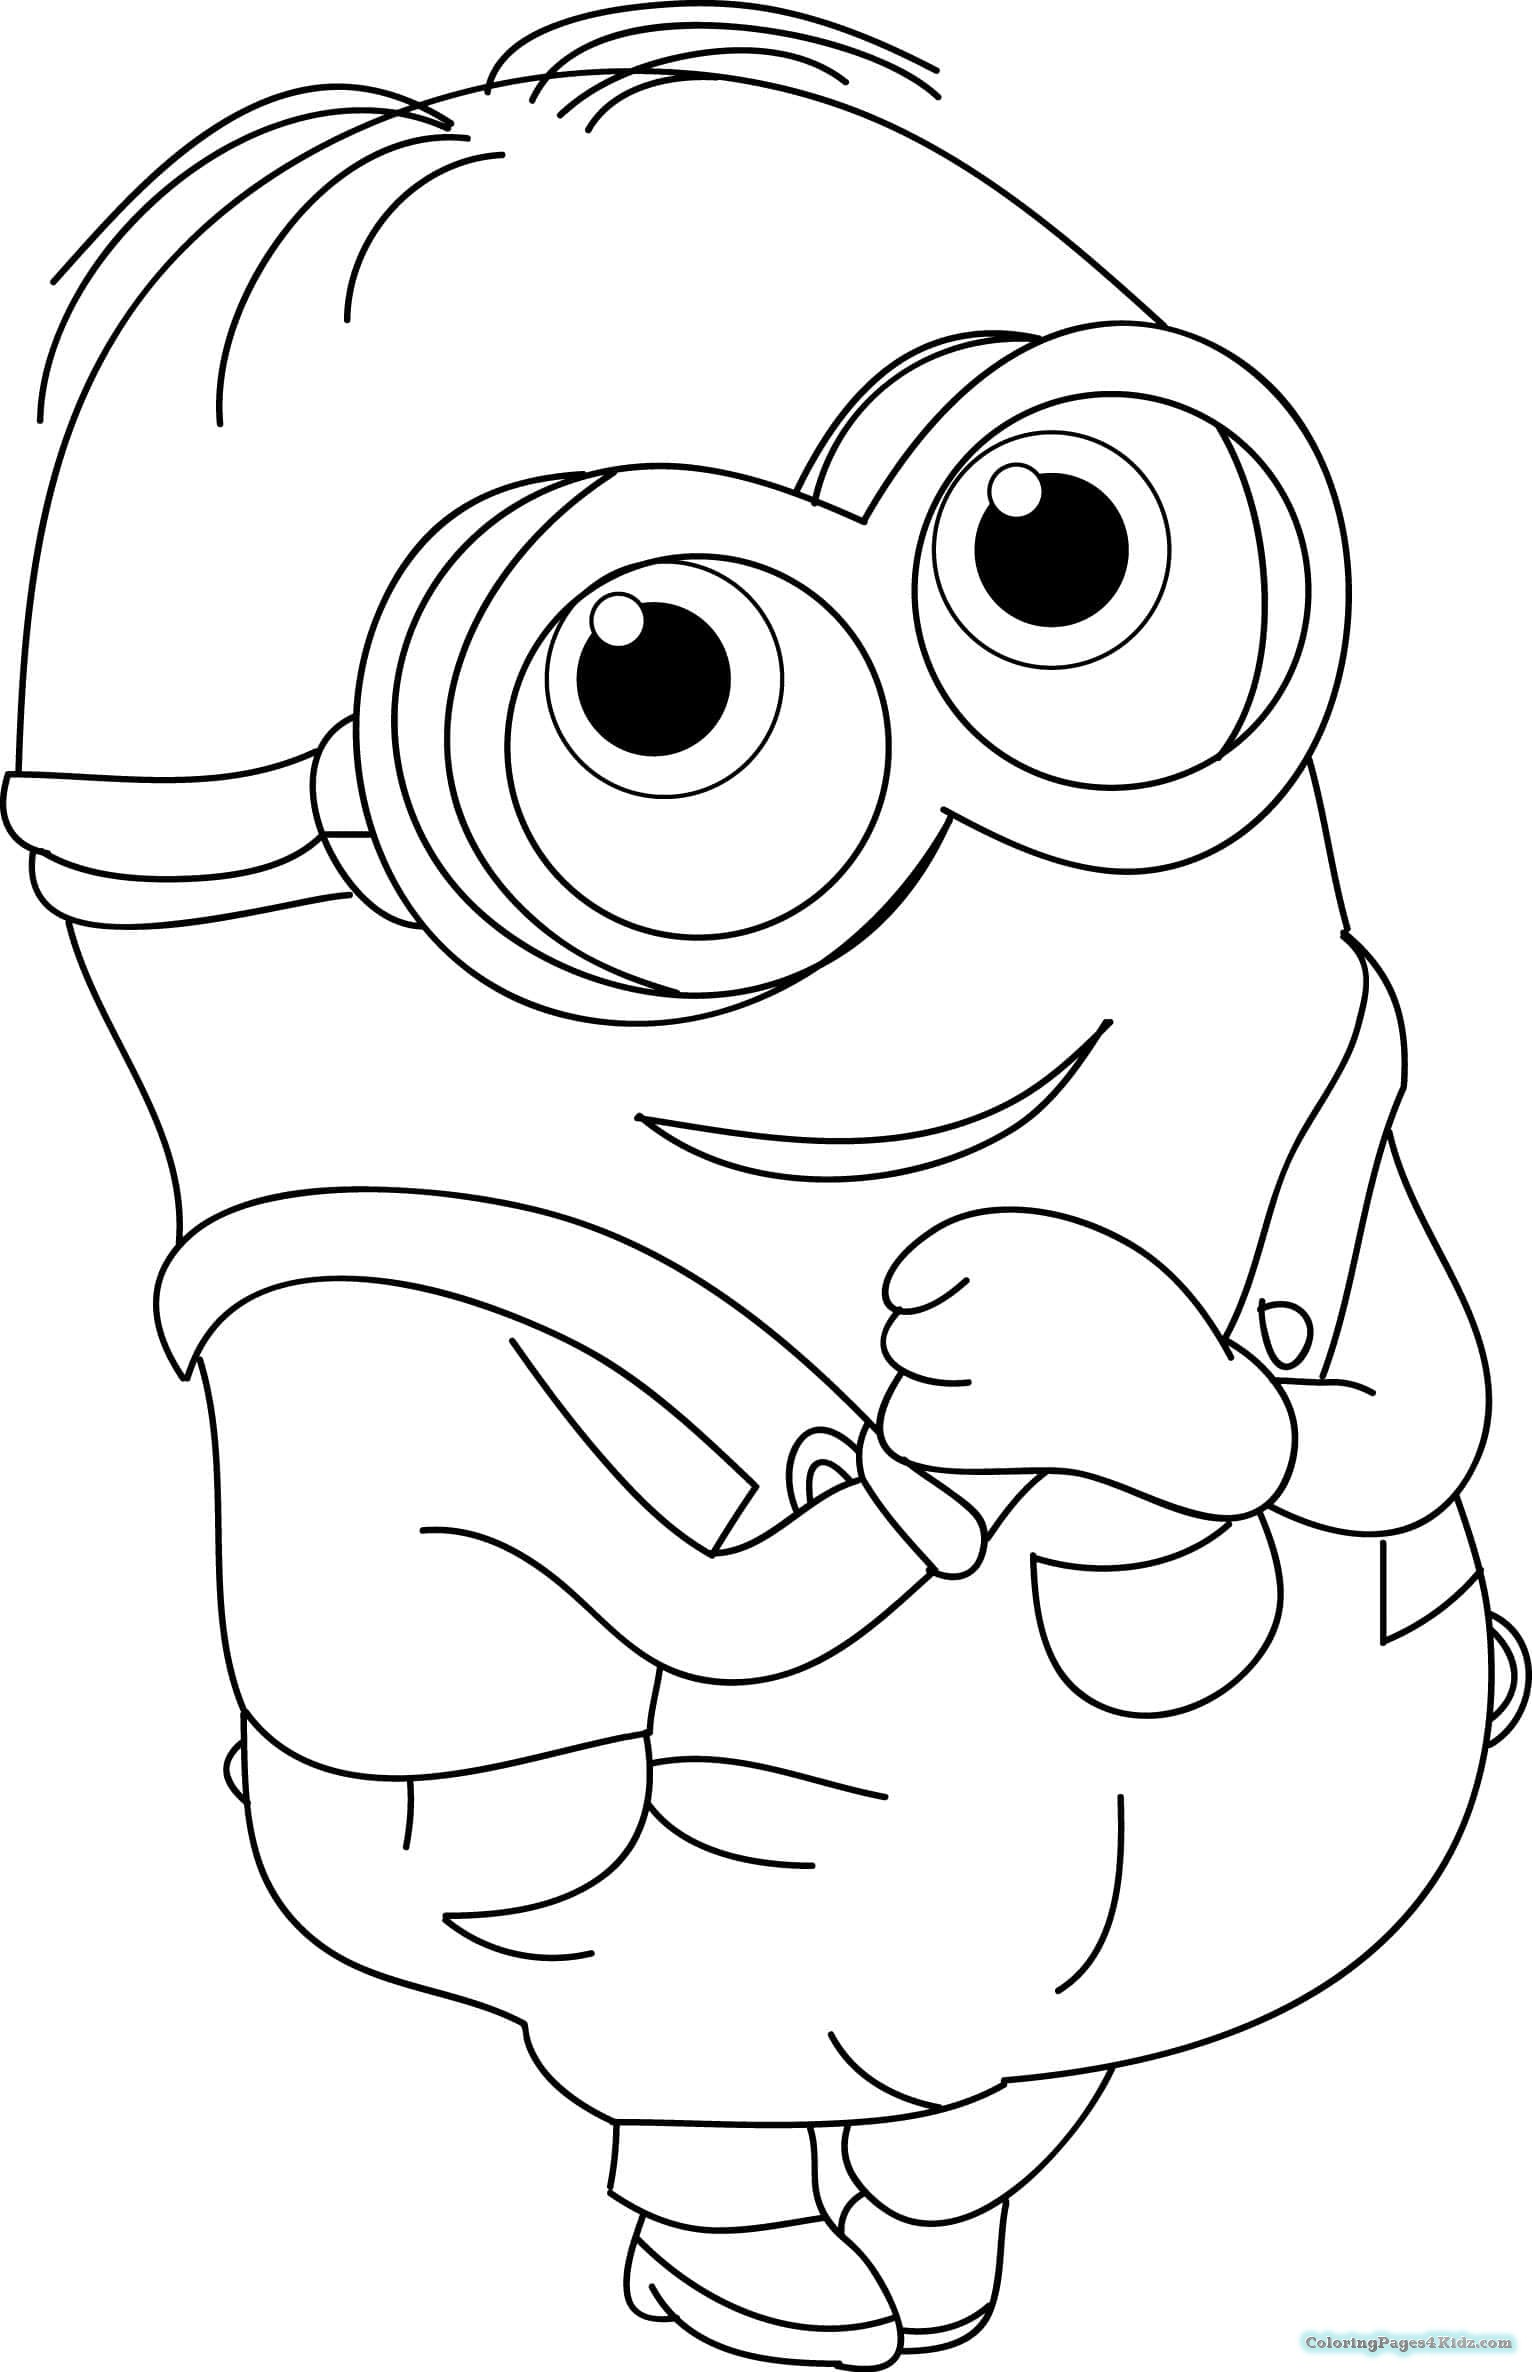 minion colouring page free coloring pages printable pictures to color kids colouring page minion